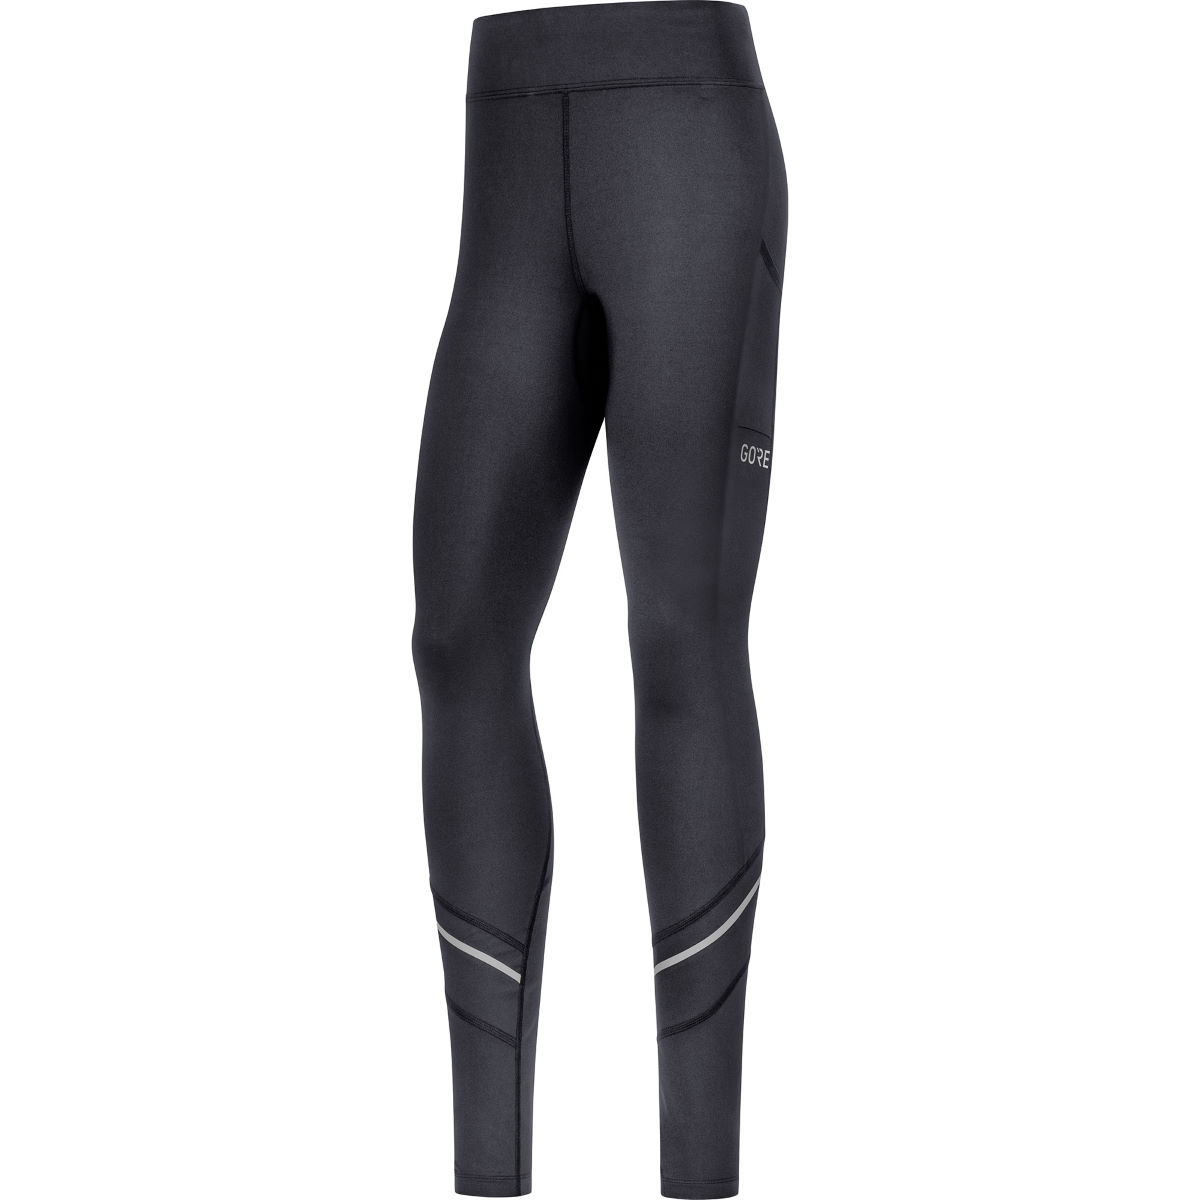 Gore Wear Women's R3 Mid Tights - Tights